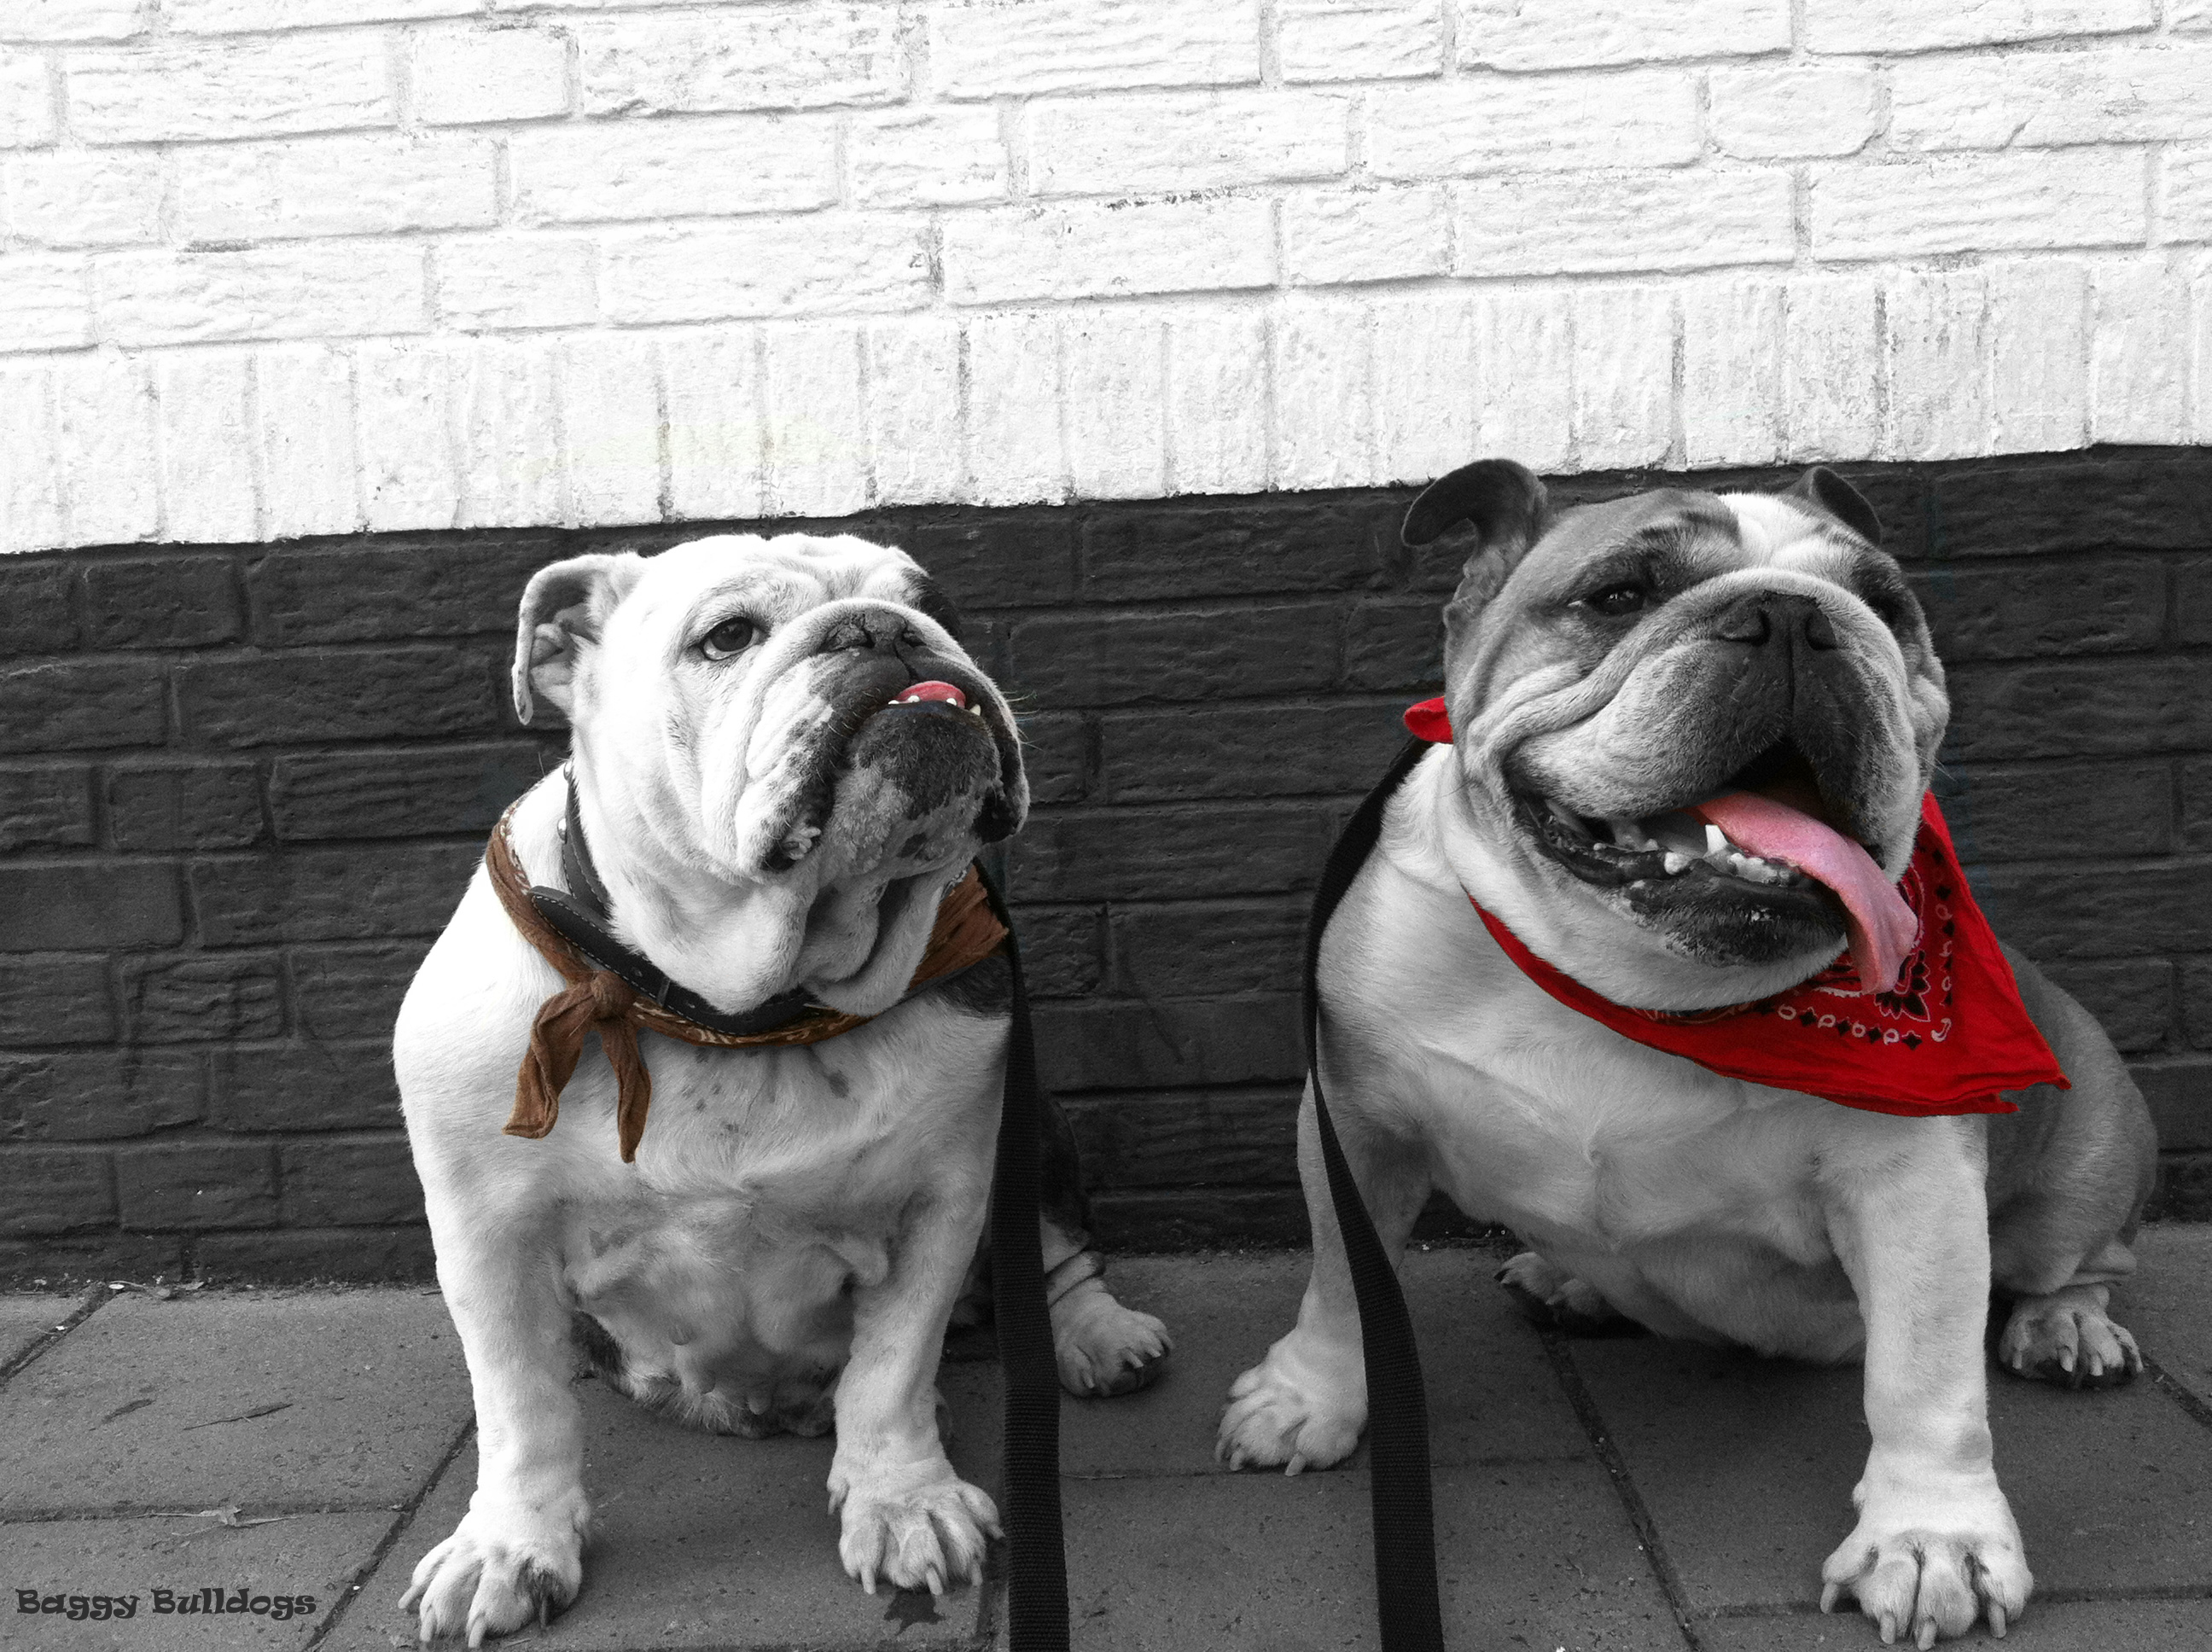 As A Bulldog Addict I Talk Lot About My Fur Bully Babies And Of Times Get The Question But Why Bulldogs What Is It That Makes